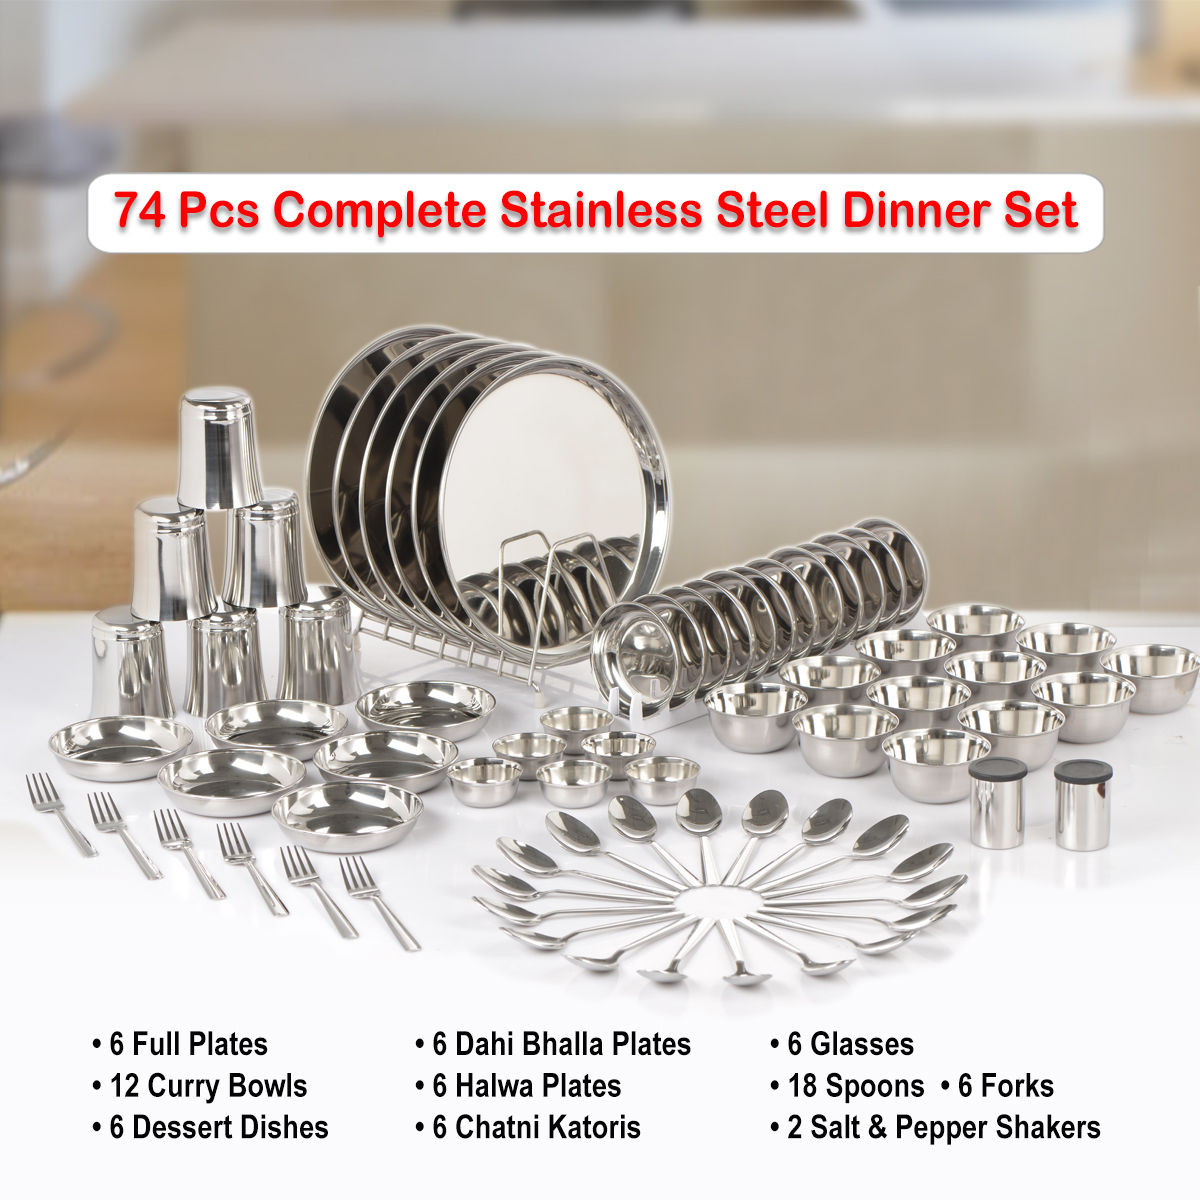 Buy 74 Pcs Complete Stainless Steel Dinner Set Online At Best Price